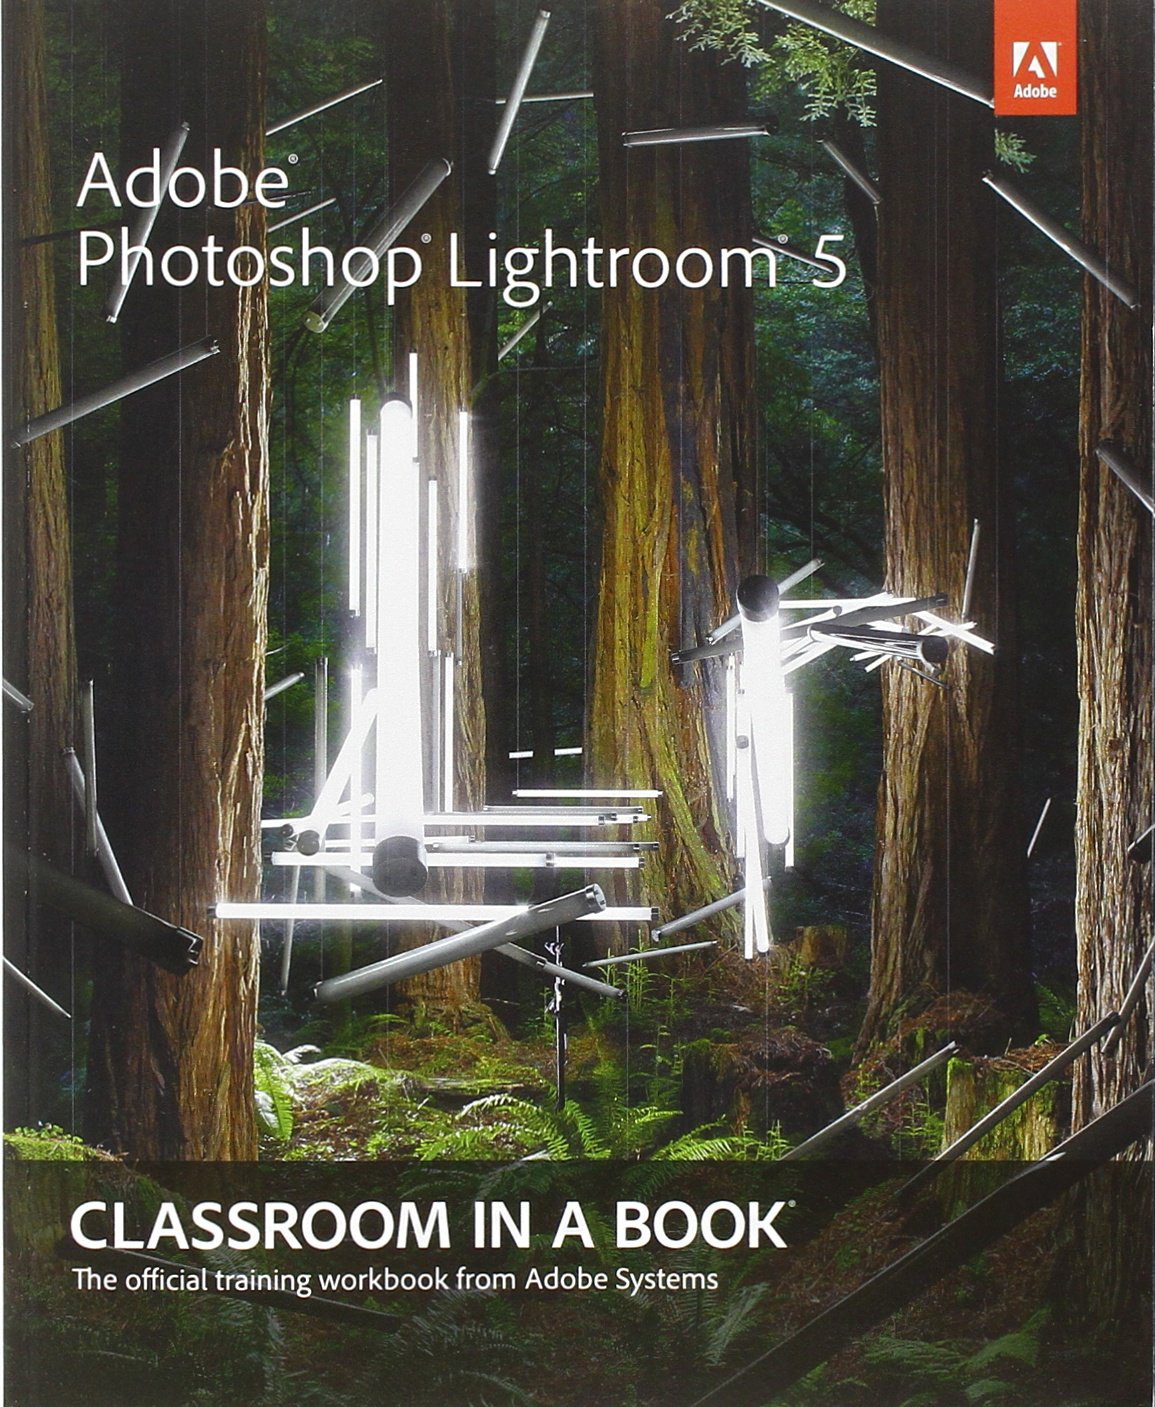 Amazon.fr - Adobe Photoshop Lightroom 5: Classroom in a Book - Adobe  Creative Team - Livres